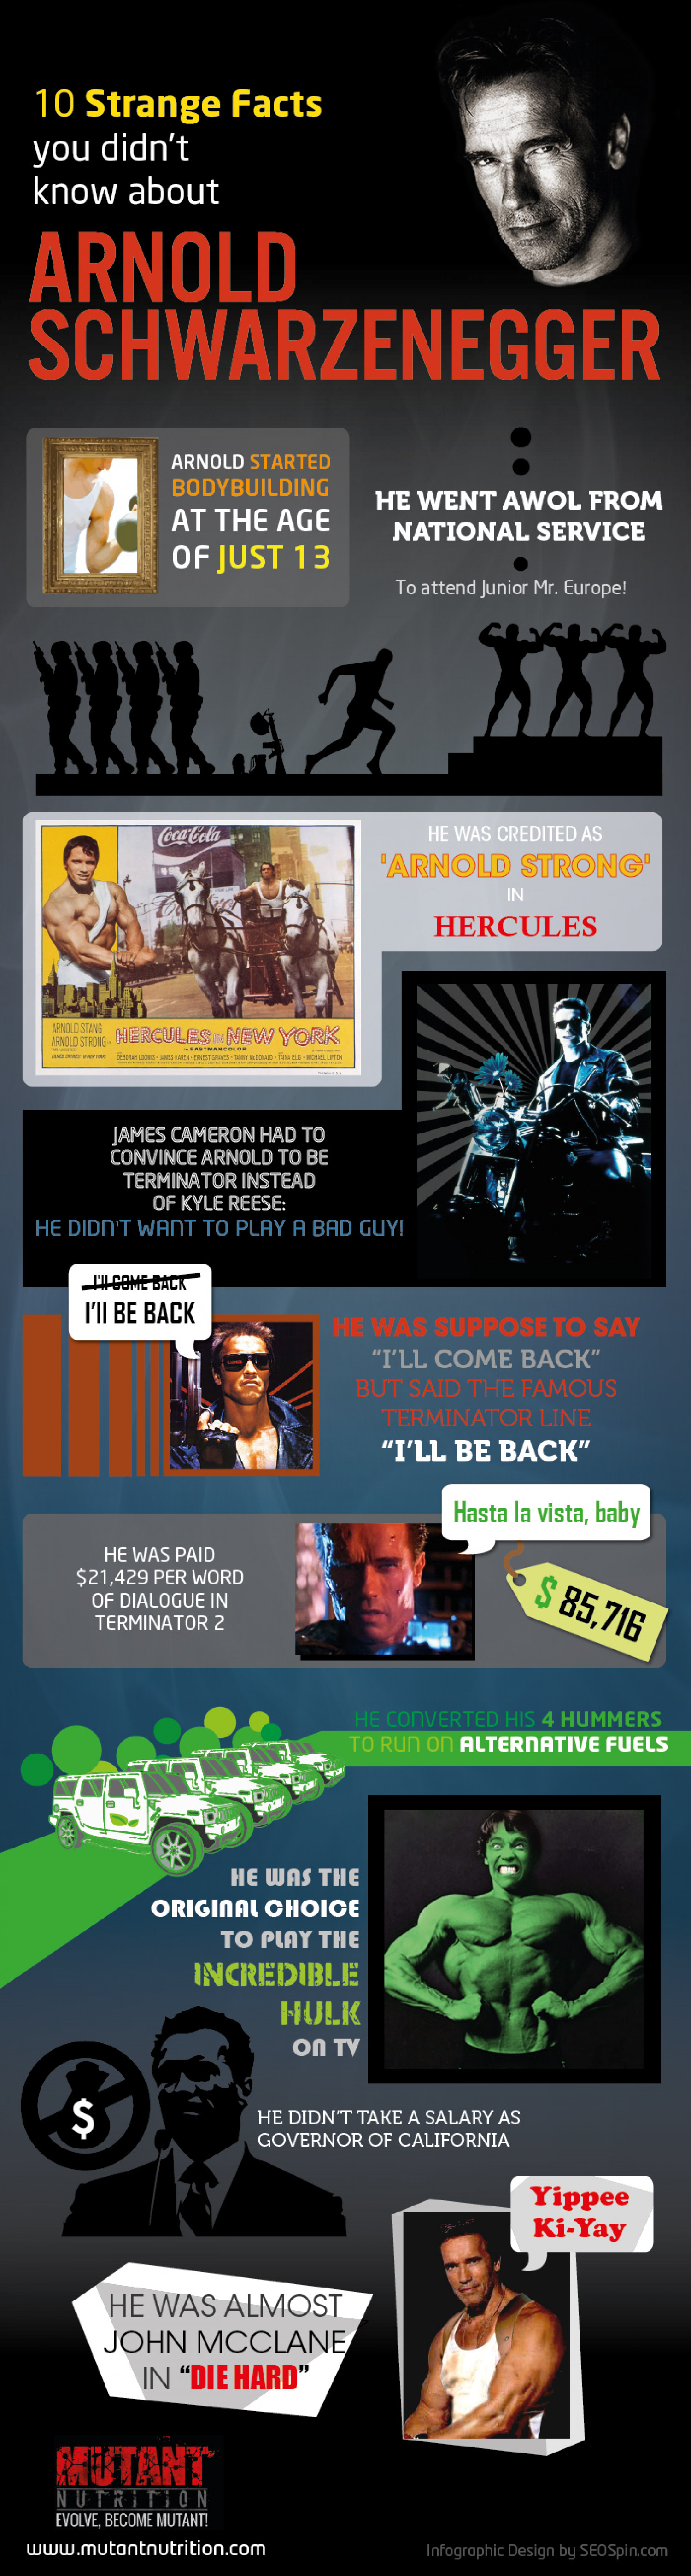 10 Strange Facts Your Didn't Know About Arnold Schwarzenegger Infographic